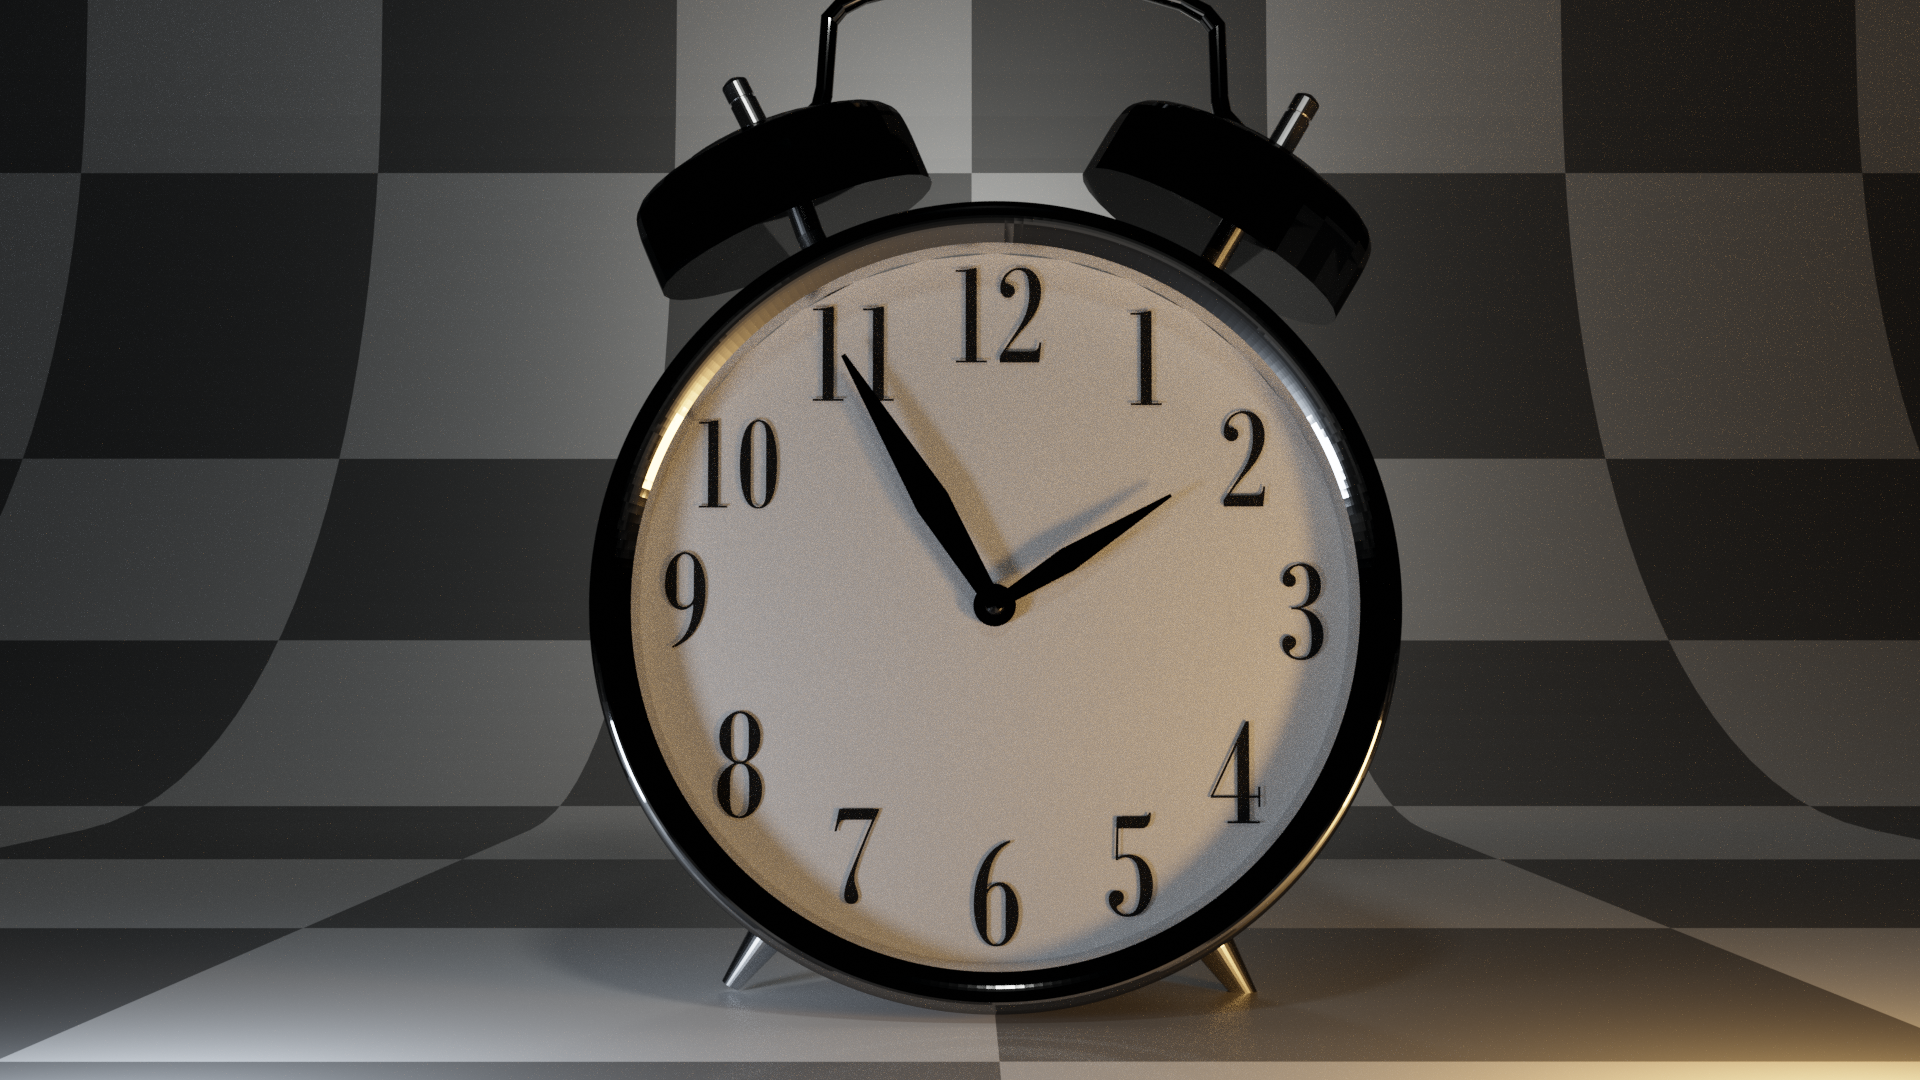 Alarm clock preview image 2